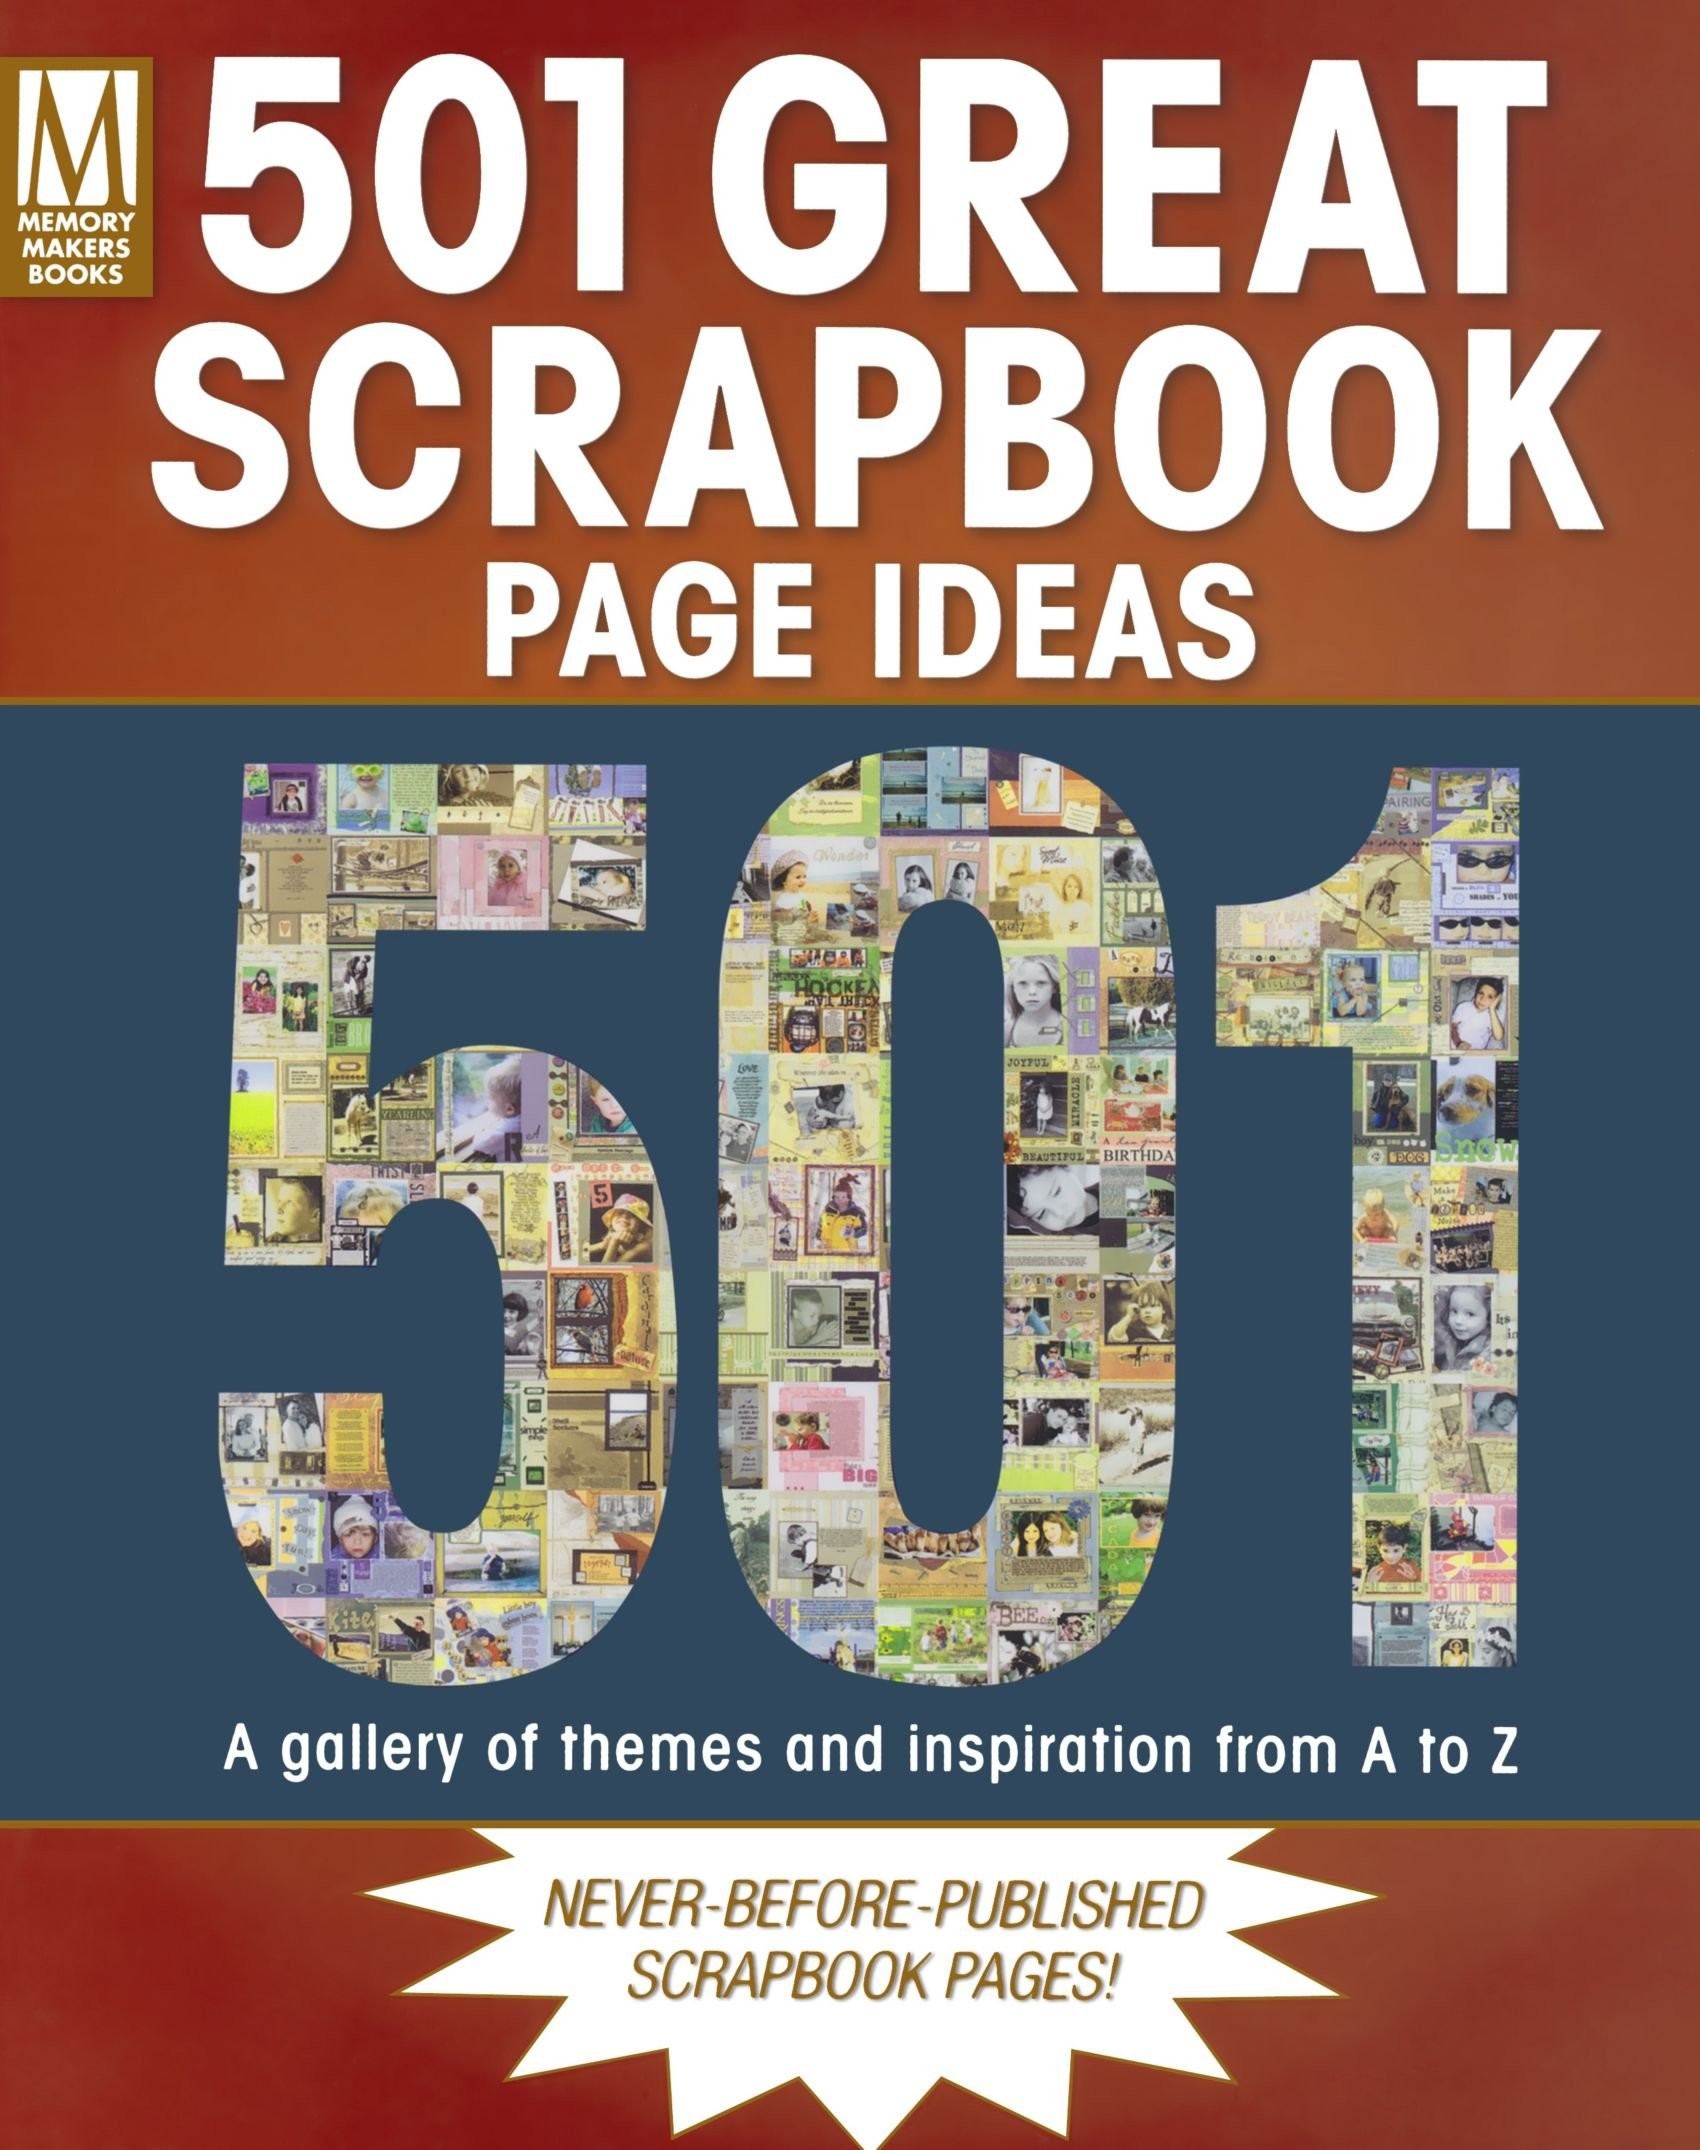 Scrapbook ideas and themes - Libro 501 Great Scrapbook Page Ideas